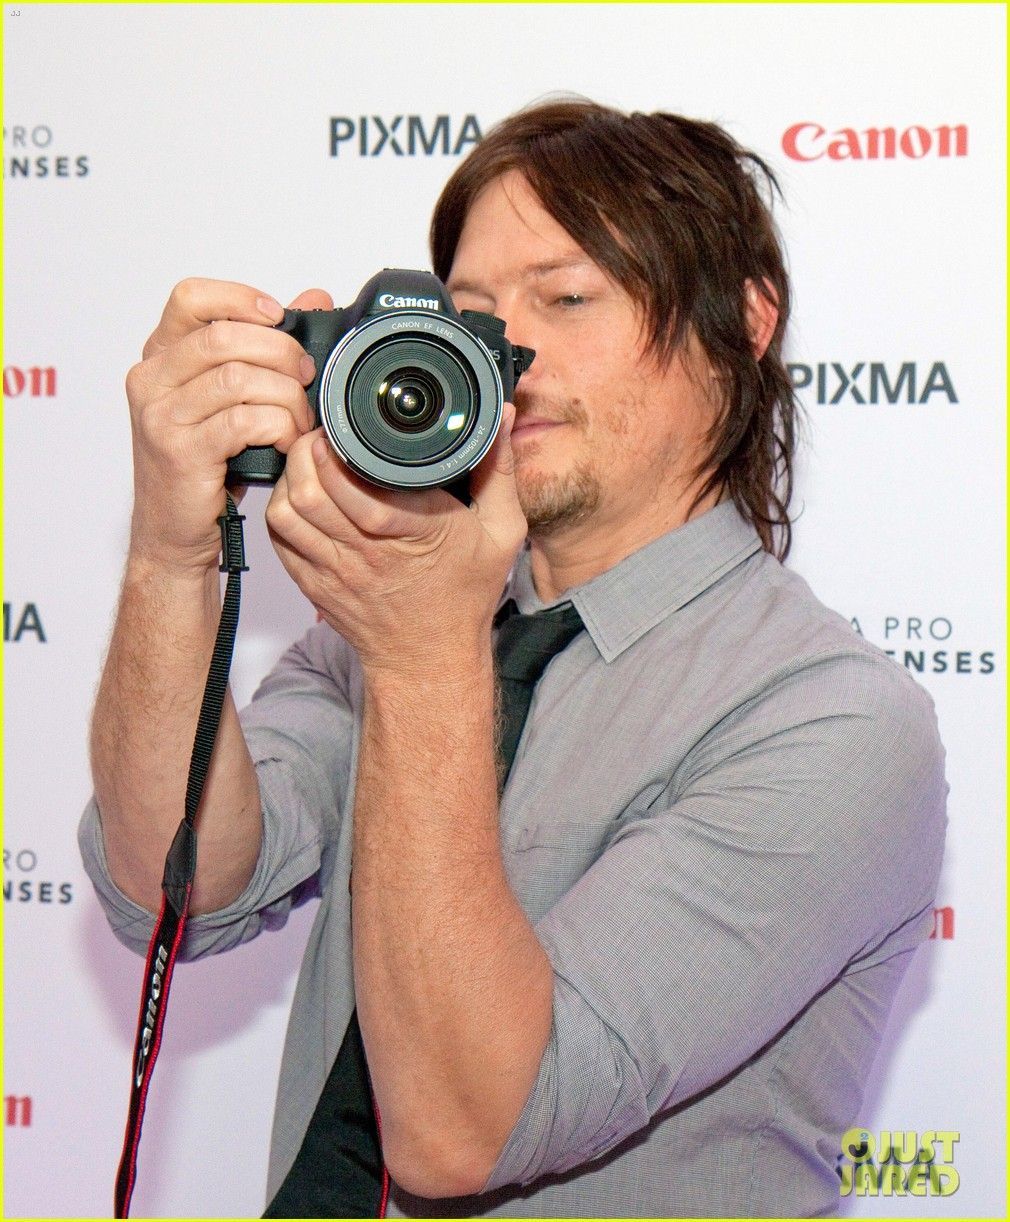 norman reedus canon pixma pro city senses gallery host 022960939